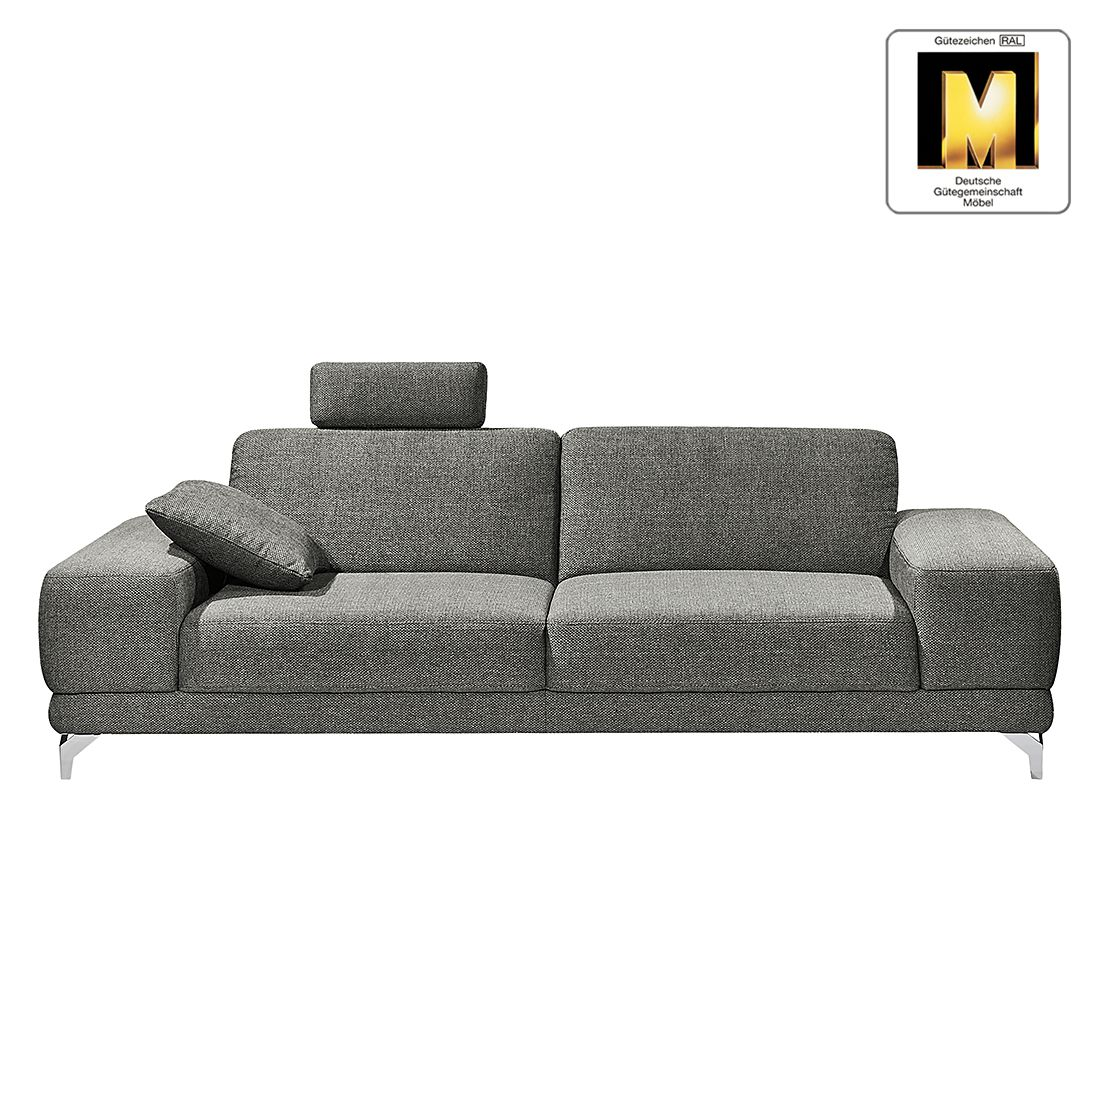 sofa casual line 2 5 sitzer strukturstoff keine funktion hellgrau claas claasen g nstig. Black Bedroom Furniture Sets. Home Design Ideas